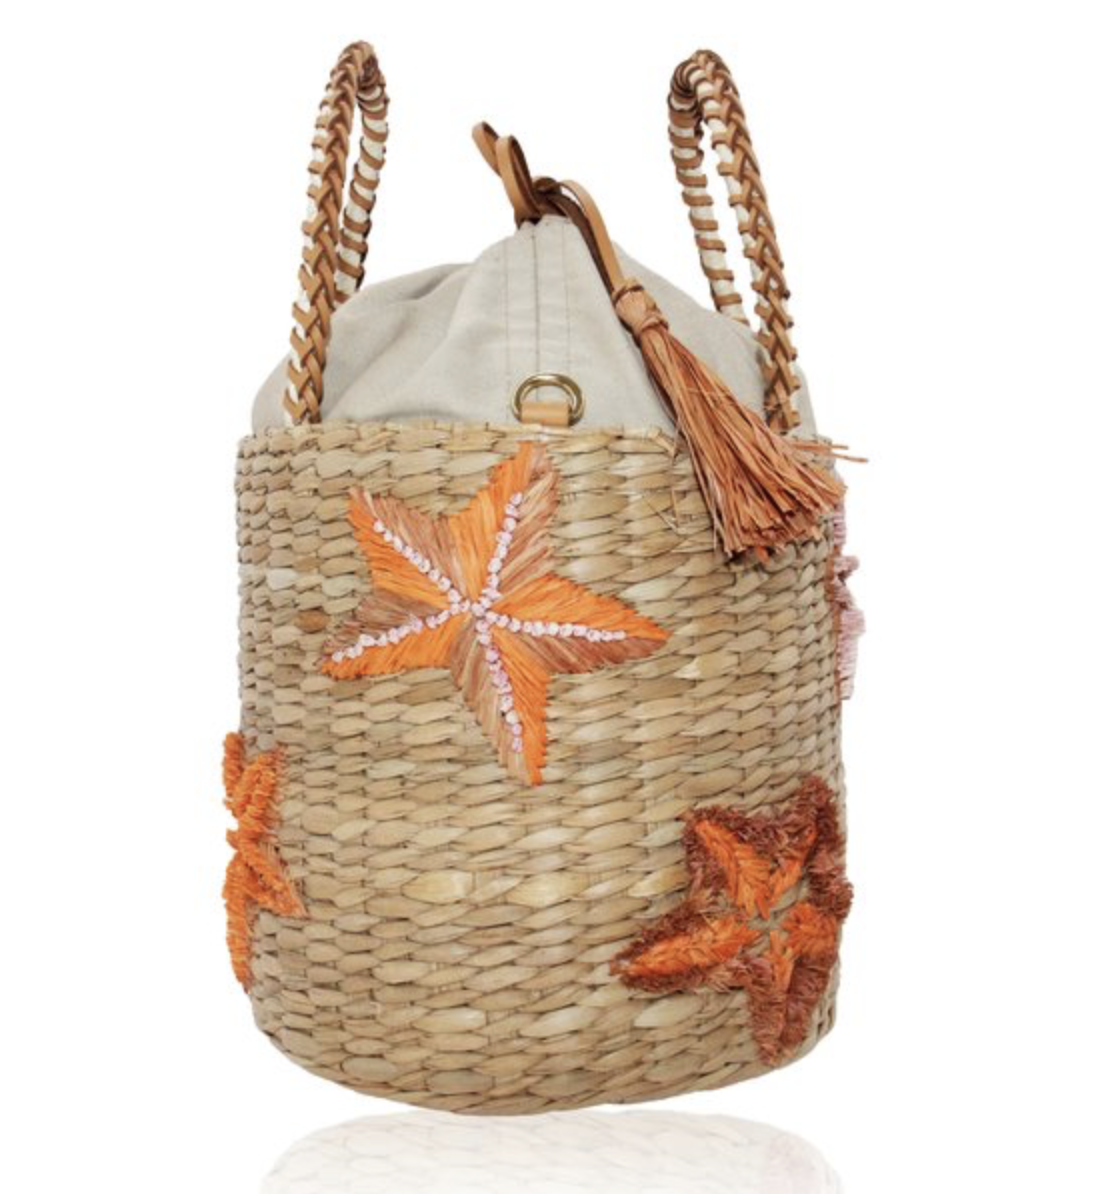 Aranaz Keira Seagrass Bucket Bag